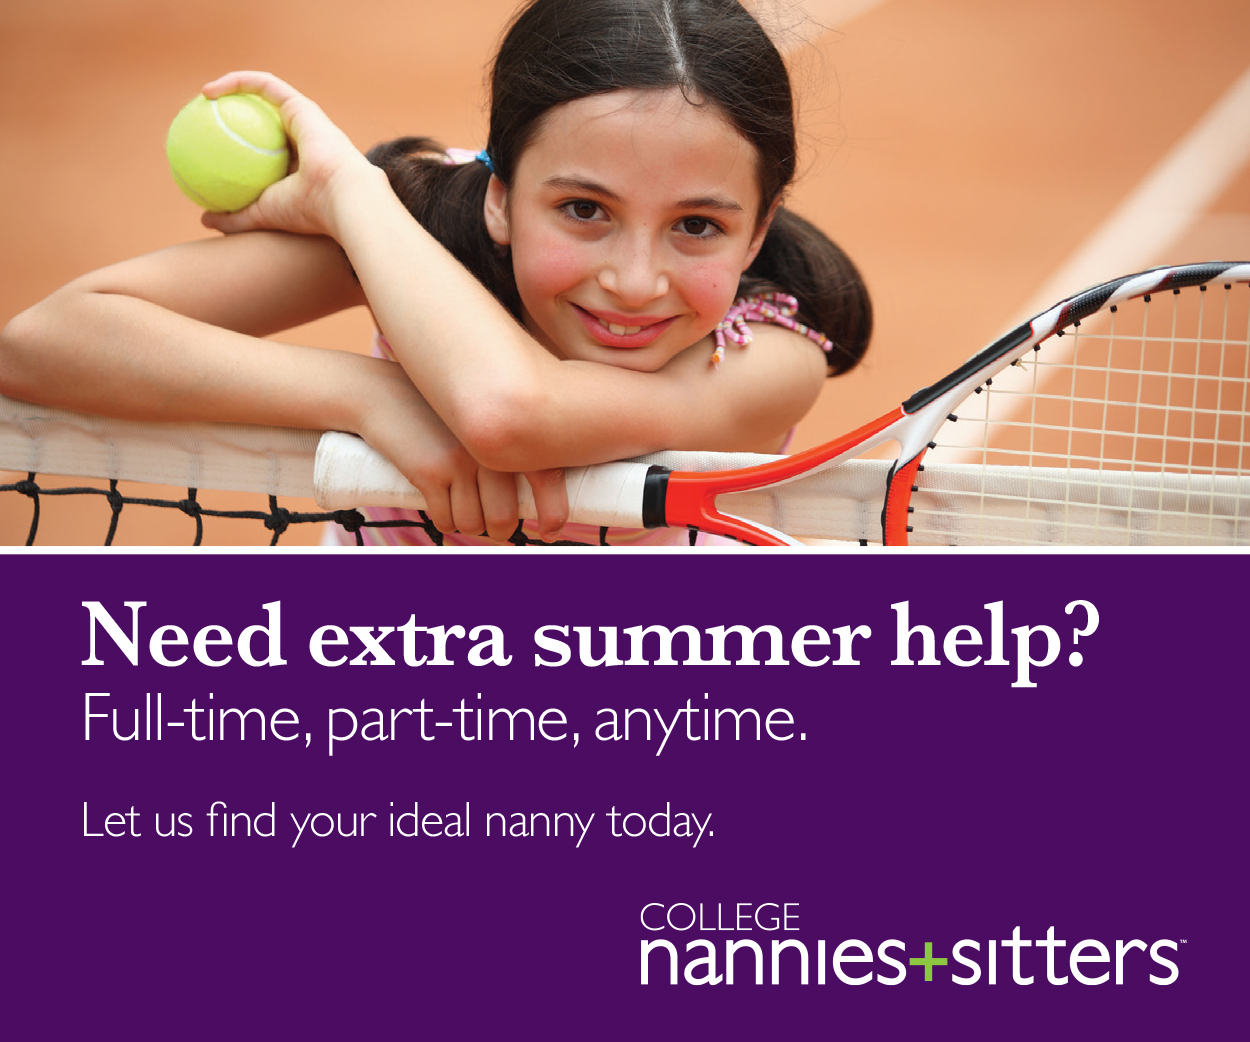 College Nannies + Sitters ad